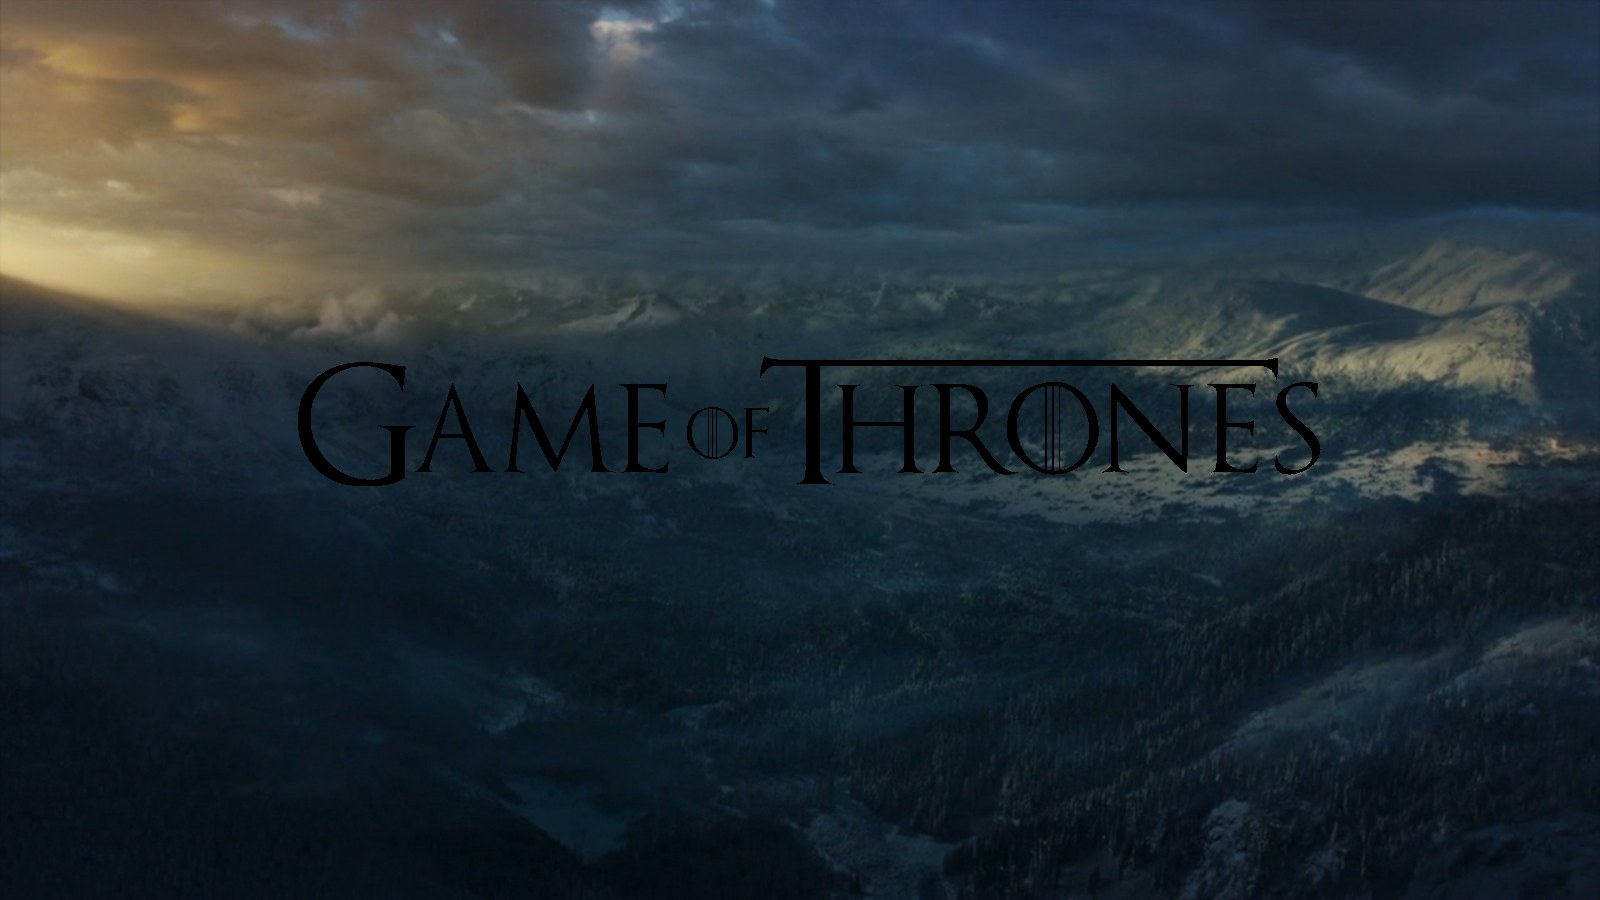 Hd Wallpapers Backgrounds For Game Of Thrones Free For: Game Of Thrones Free Wallpaper